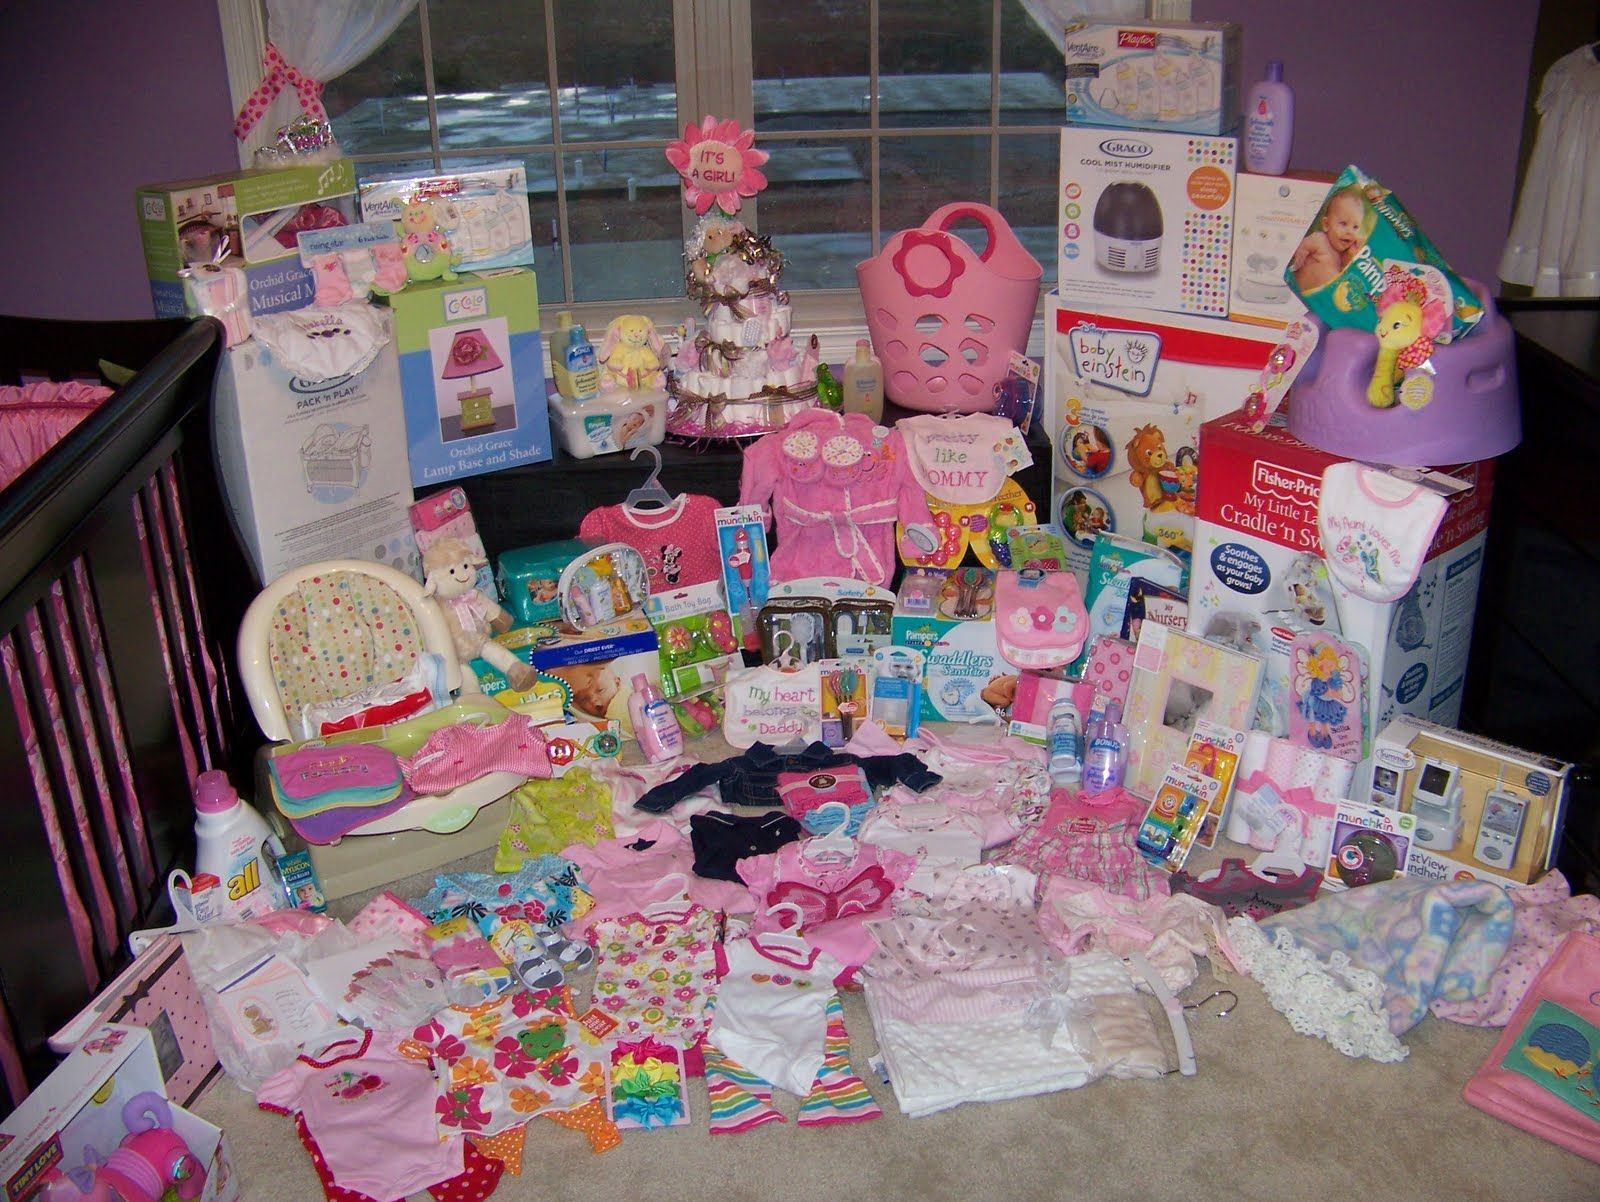 All the baby shower gifts baby shower pinterest all the baby shower gifts negle Gallery